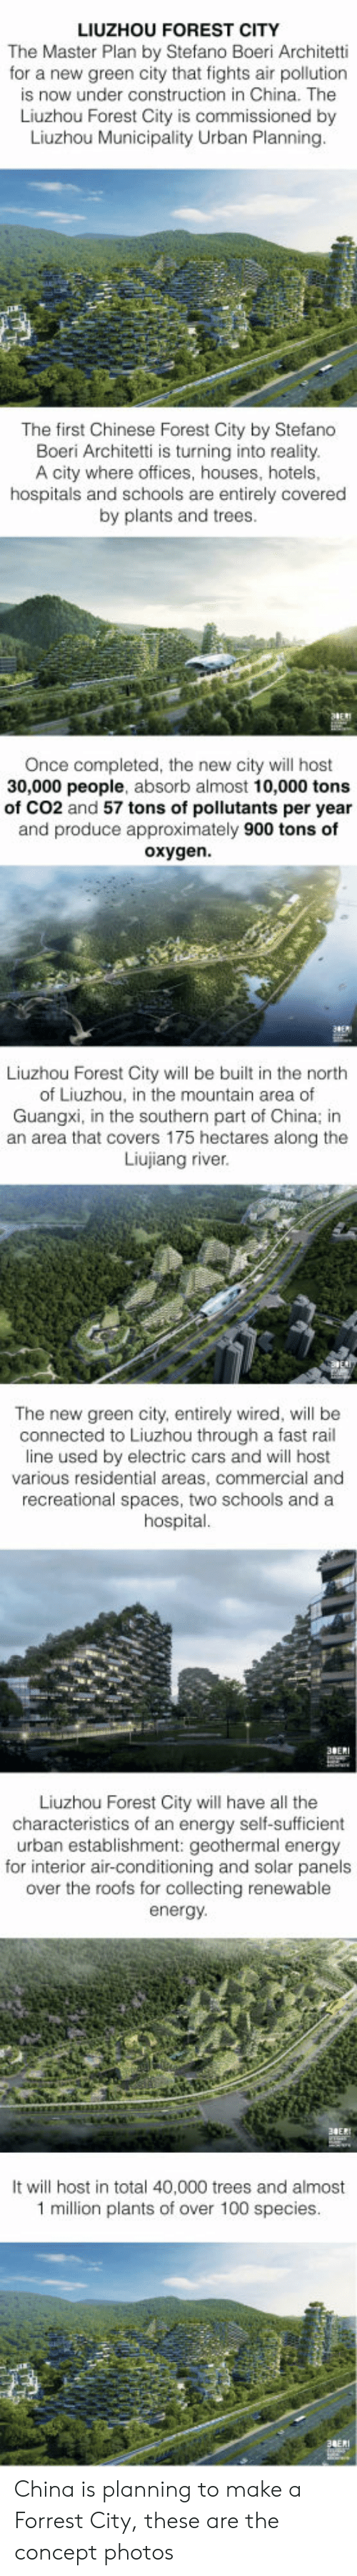 Absorbing: LIUZHOU FOREST CITY  The Master Plan by Stefano Boeri Architetti  for a new green city that fights air pollution  is now under construction in China. The  Liuzhou Forest City is commissioned by  Liuzhou Municipality Urban Planning  The first Chinese Forest City by Stefano  Boeri Architetti is turning into reality  A city where offices, houses, hotels  hospitals and schools are entirely covered  by plants and trees  Once completed, the new city will host  30,000 people  , absorb almost 10,000 tons  of CO2 and 57 tons of pollutants per year  and produce approximately 900 tons of  oxygen  Liuzhou Forest City will be built in the north  of Liuzhou, in the mountain area of  Guangxi, in the southern part of China; in  an area that covers 175 hectares along the  Liujiang river  The new green city, entirely wired, will be  connected to Liuzhou through a fast rail  line used by electric cars and will host  various residential areas, commercial and  recreational spaces, two schools and a  hospital  Liuzhou Forest City will have all the  characteristics of an energy self-sufficient  urban establishment: geothermal energy  for interior air-conditioning and solar panels  over the roofs for collecting renewable  energy  ove the roofs  It will host in total 40,000 trees and almost  1 million plants of over 100 species China is planning to make a Forrest City, these are the concept photos